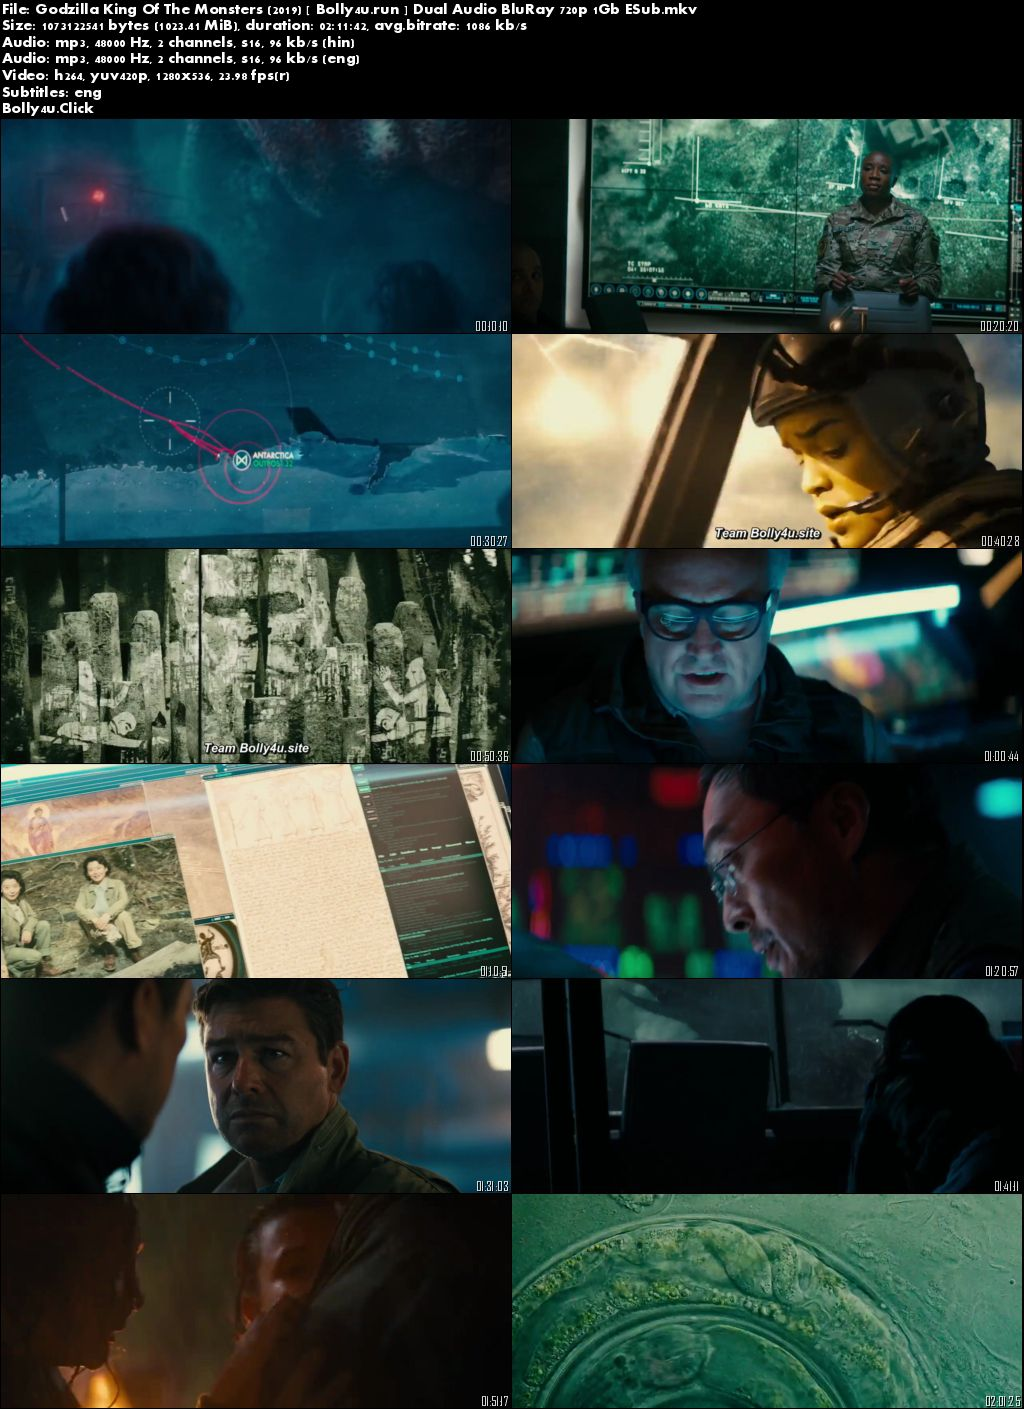 Godzilla King Of The Monsters 2019 BRRip 1GB Hindi Dual Audio ORG 720p Download